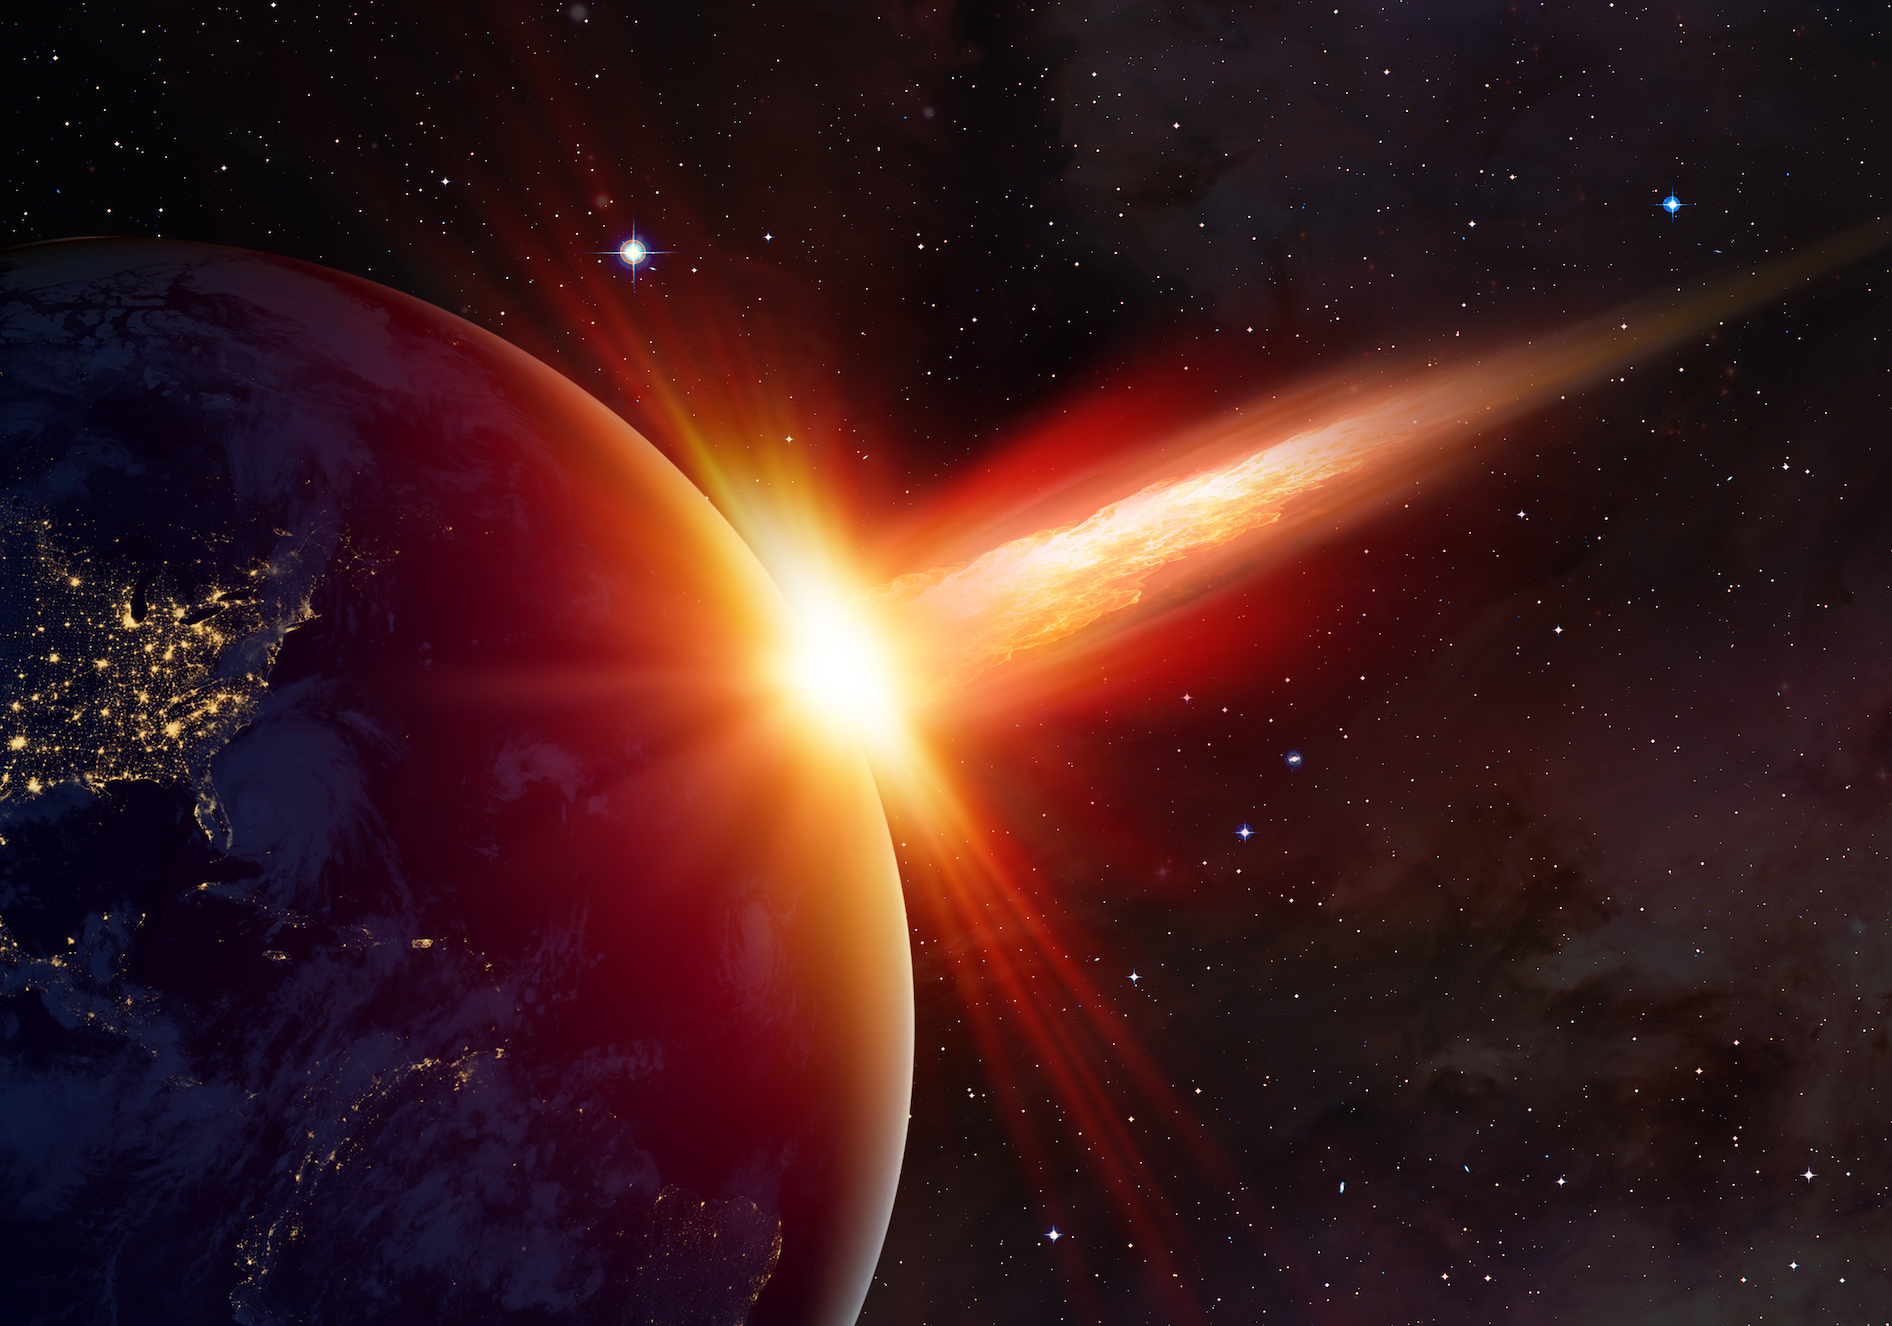 Experts have found that the Chicxulub asteroid strike 65 million years ago triggered global warming and drove temperatures up by five degrees Celsius, which persisted for around 100,000 years.